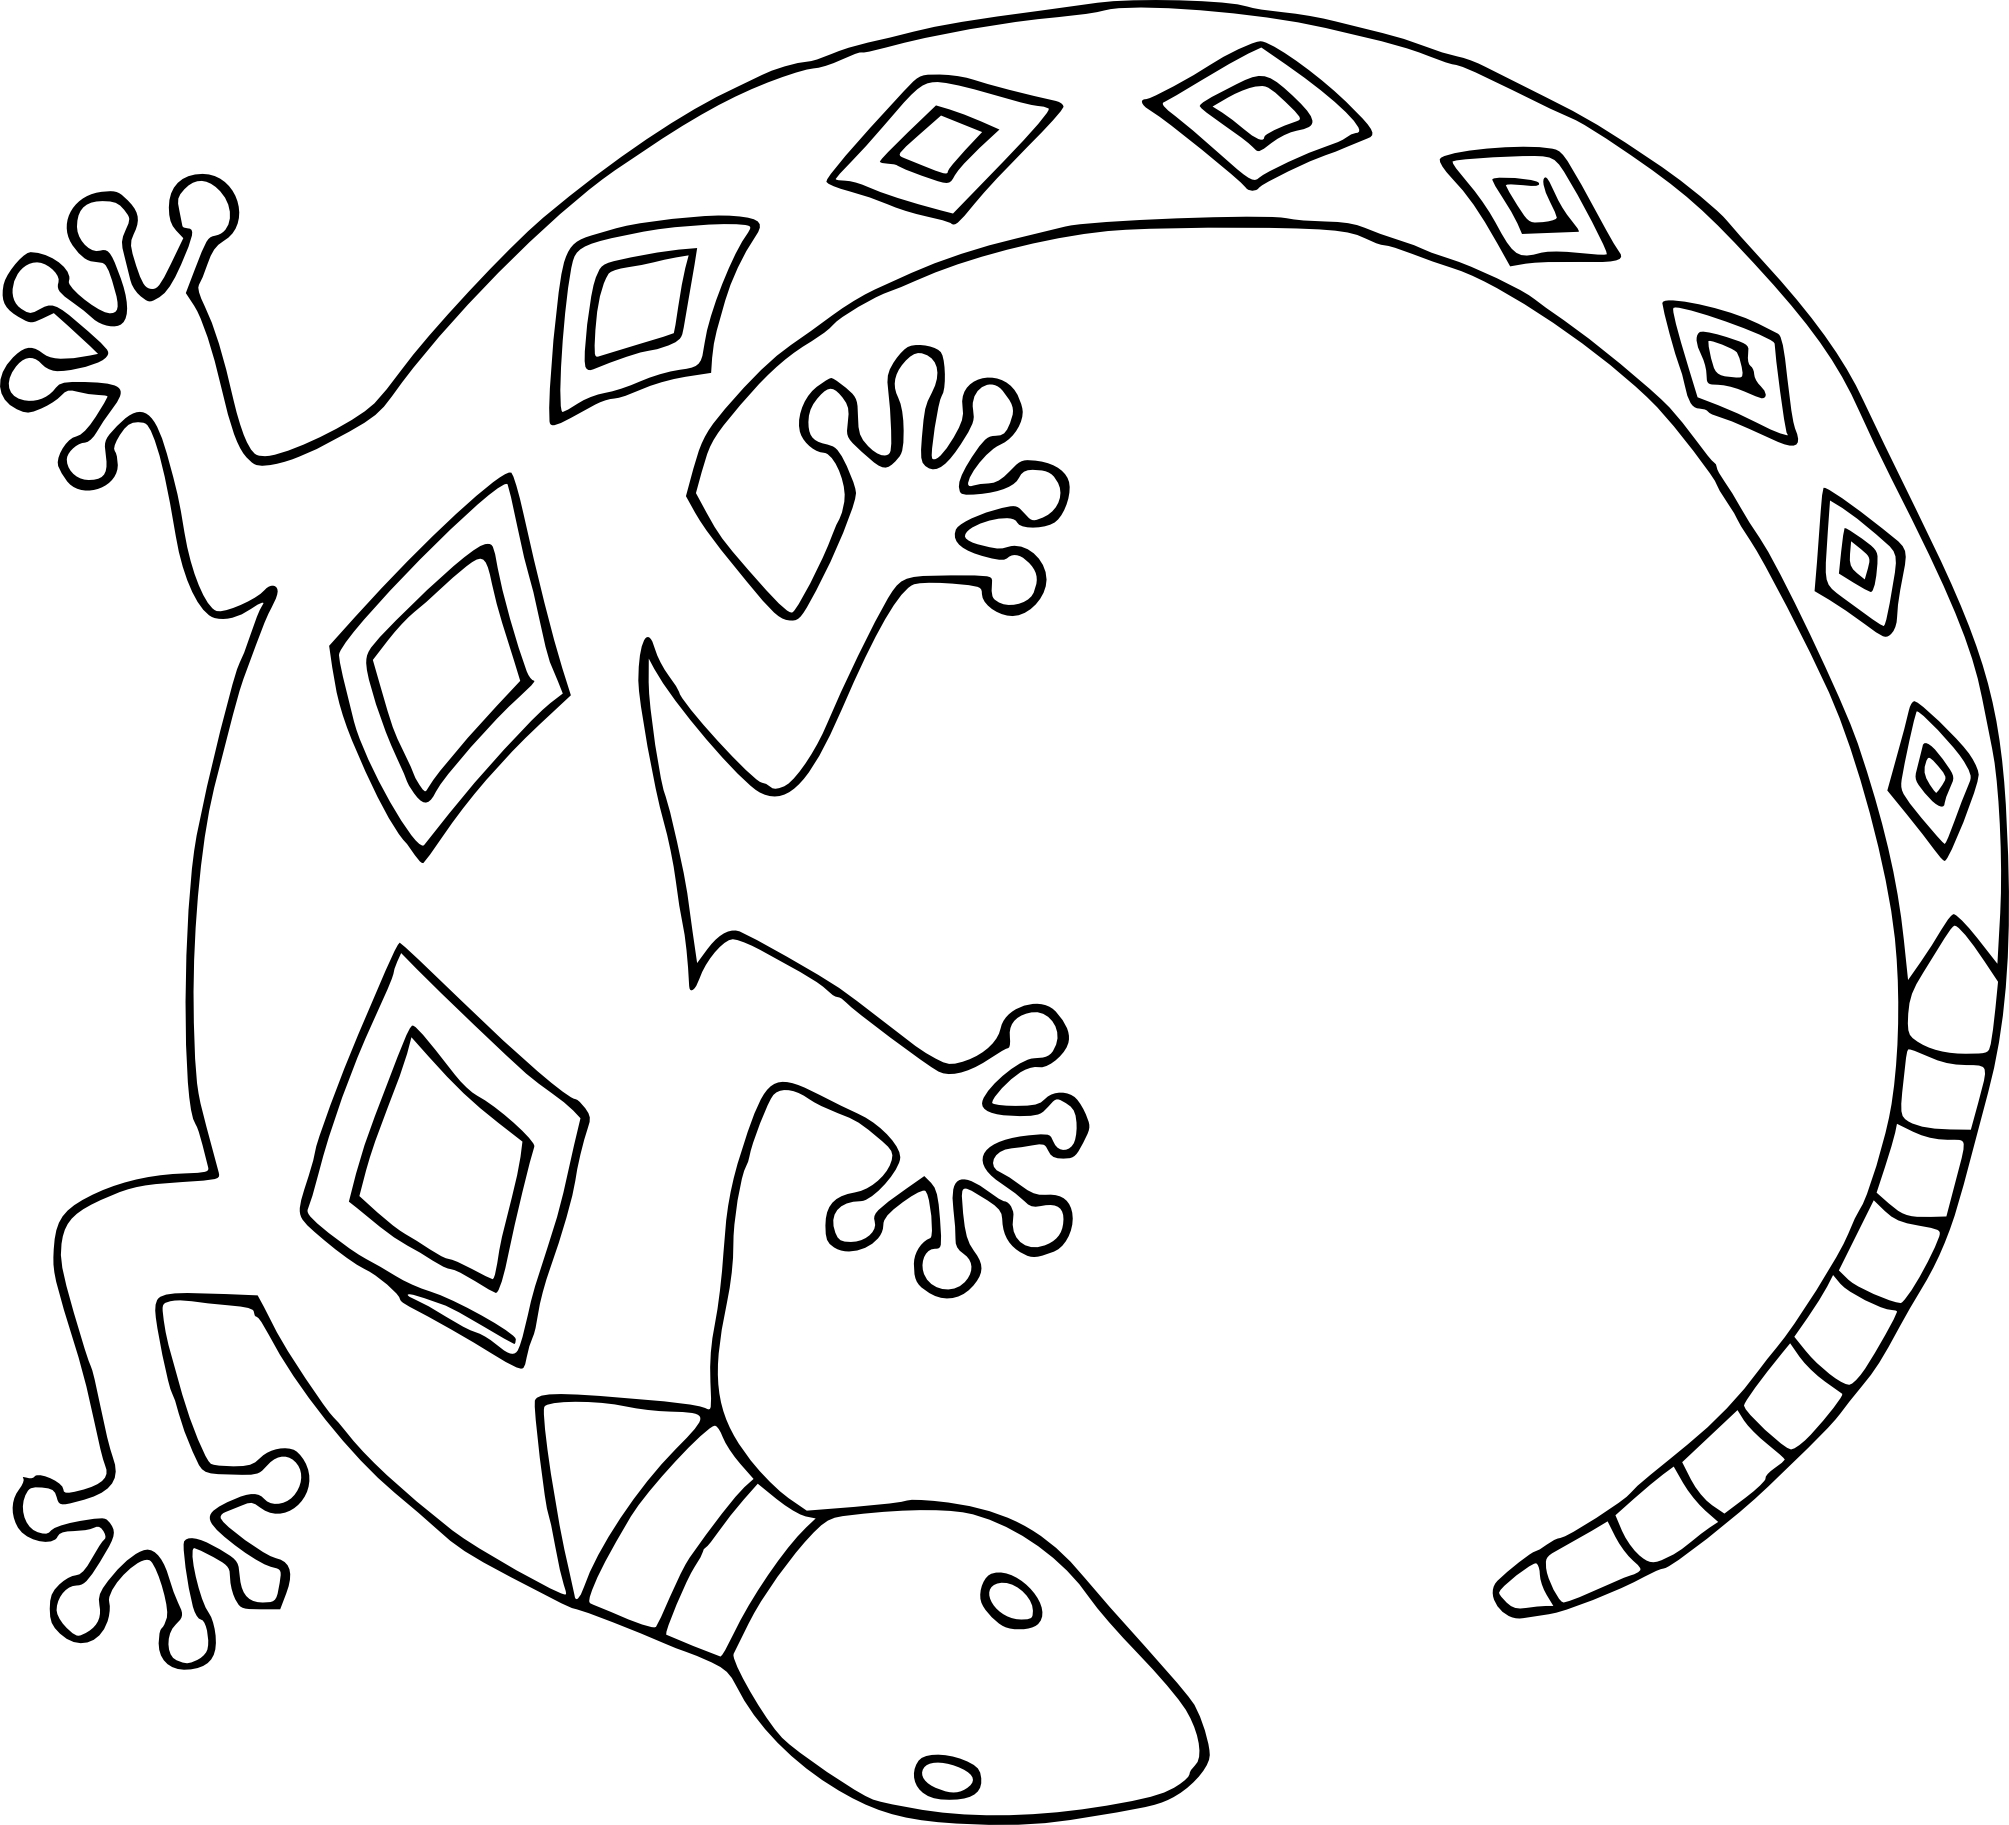 Coloriage lezard